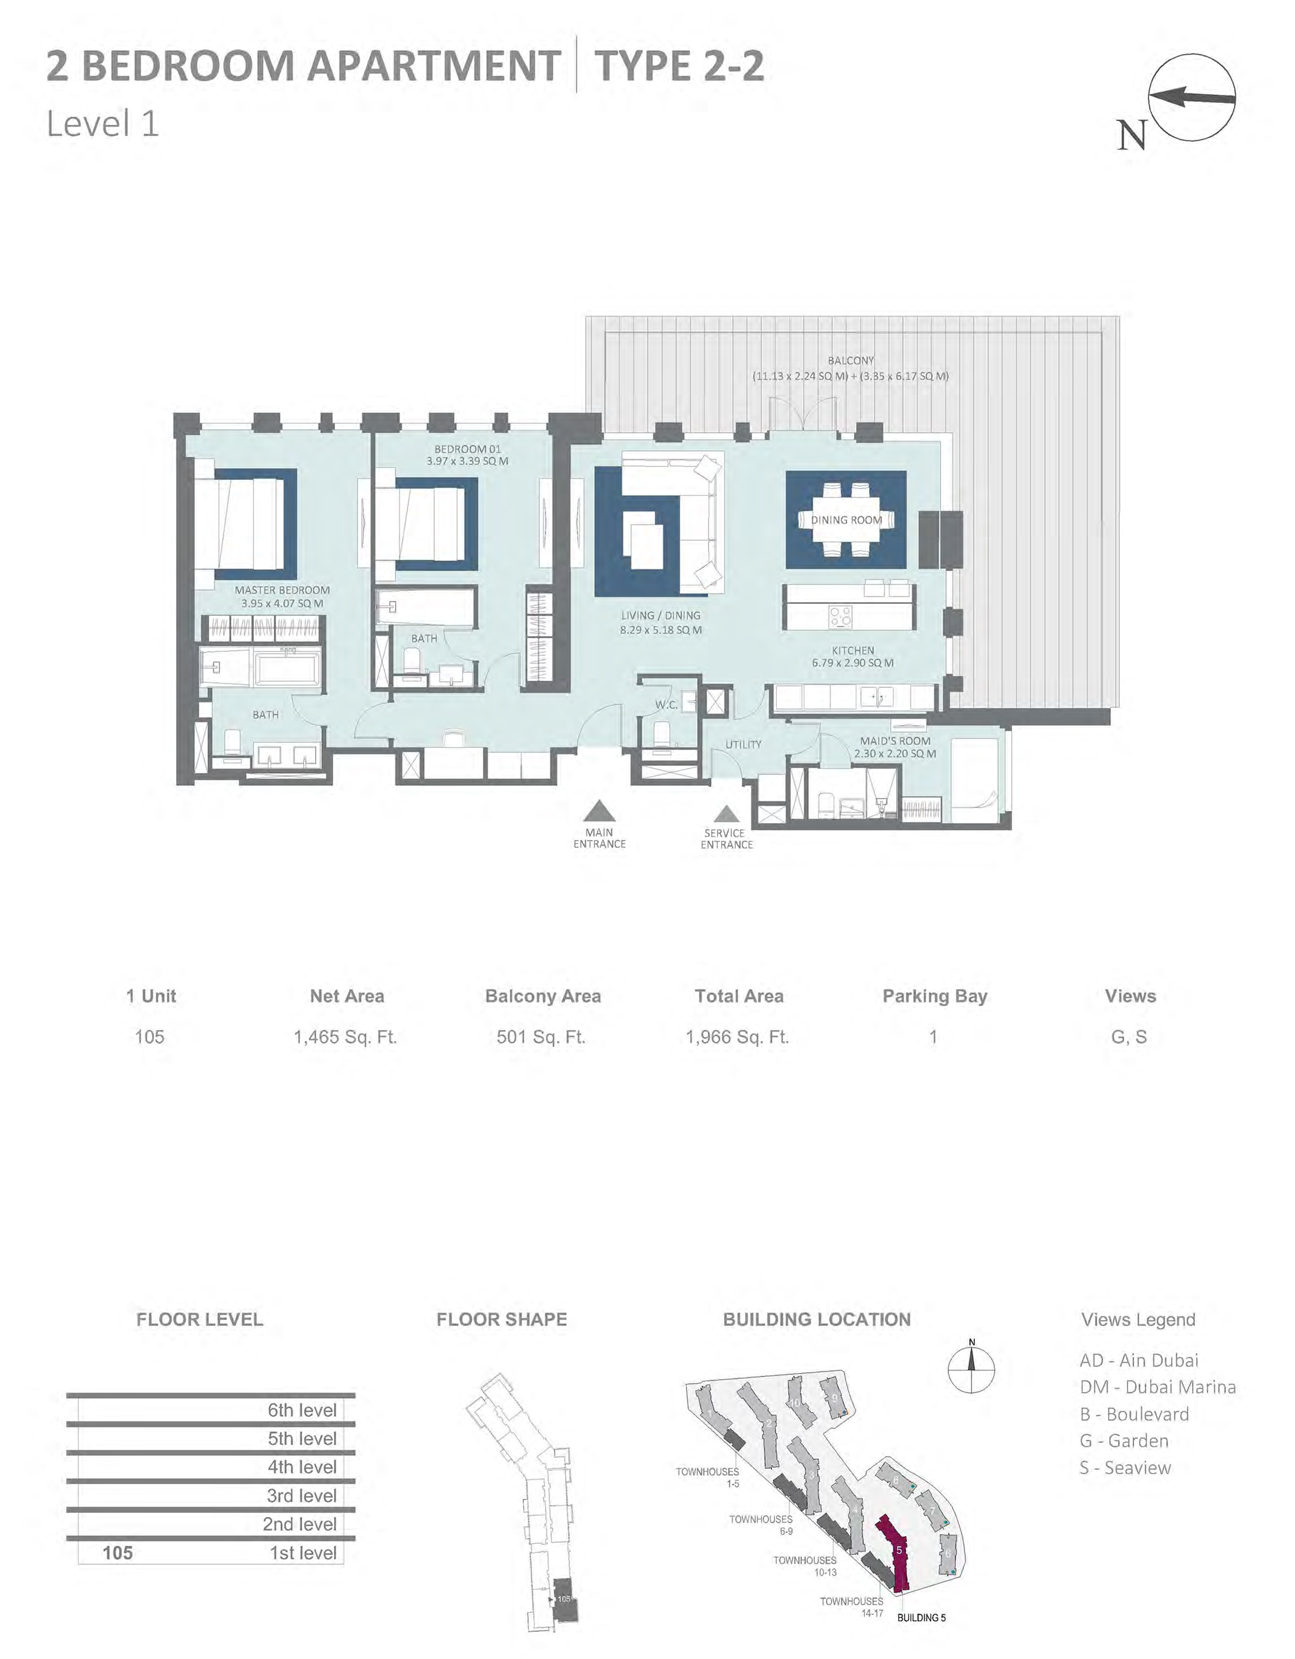 Building 5 - 2 Bedroom Type 2-2 Level 1 , Size 1465    sq. ft.